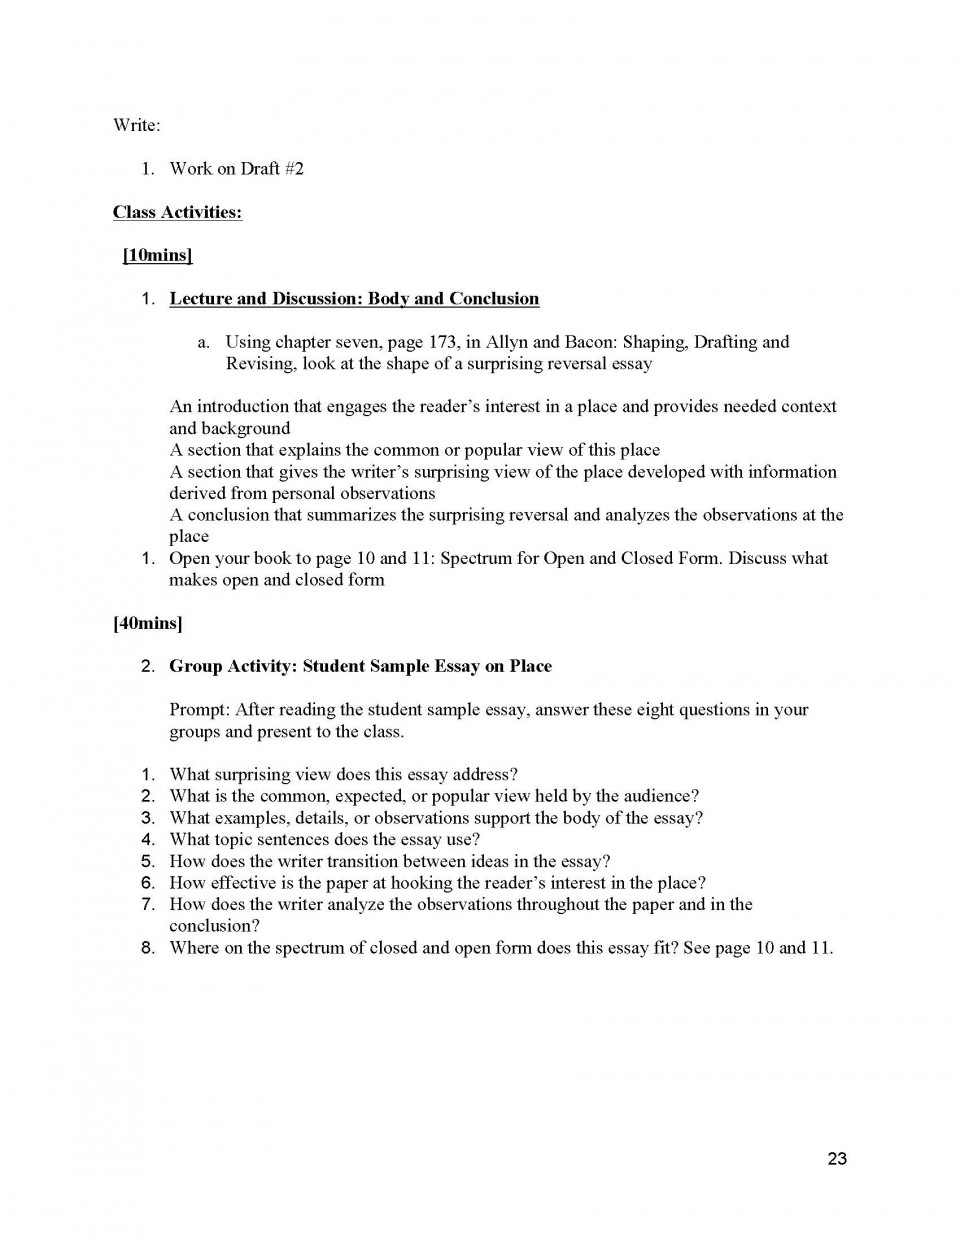 024 Informative Essay Topics Unit 2 Plans Instructor Copy Page 23 Remarkable Middle School Fourth Grade For Graders 960